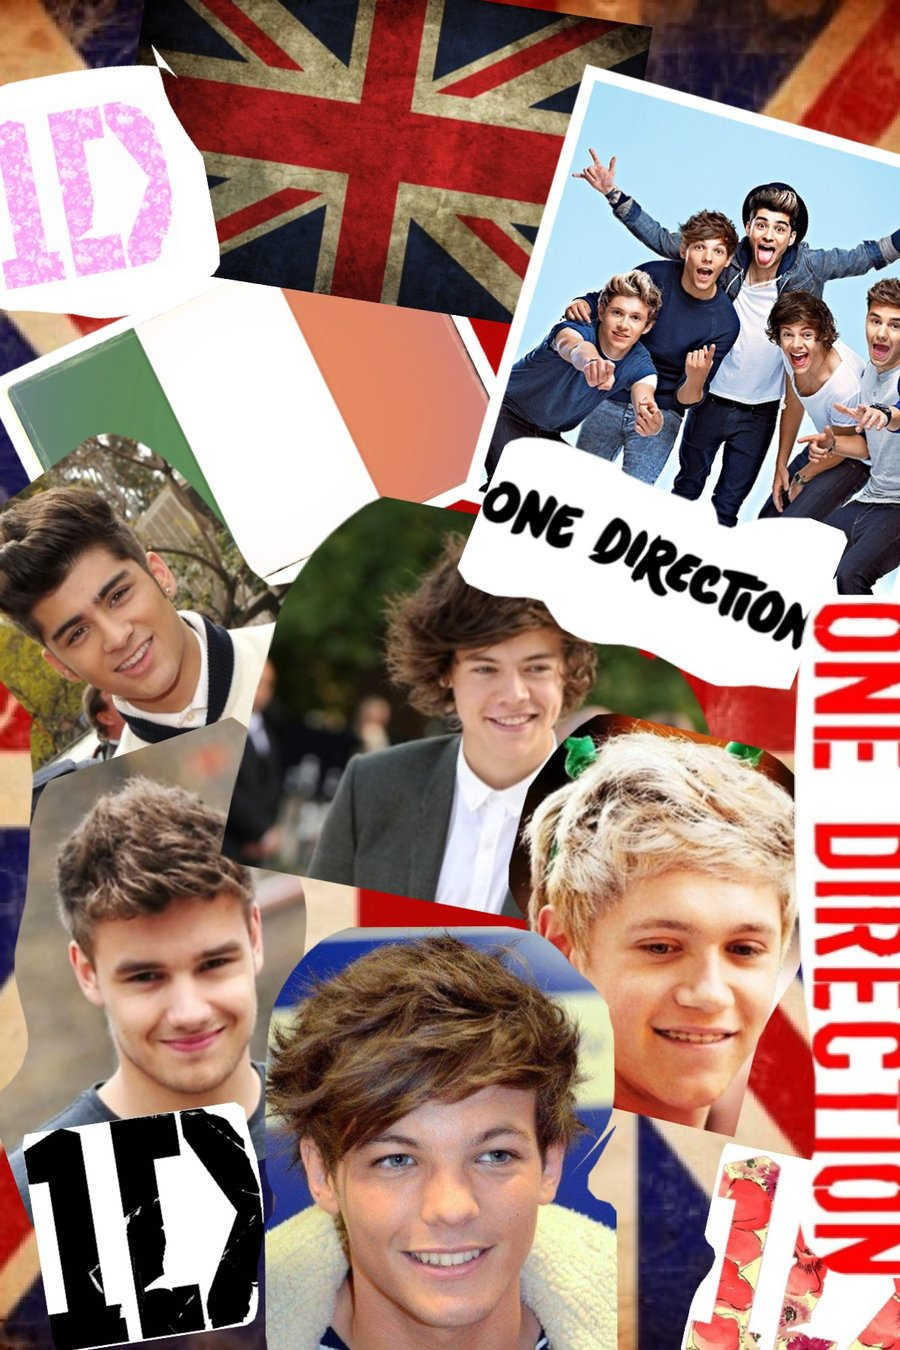 Image one direction background ipod iphone ipad by kyliekoak one direction background ipod iphone ipad by kyliekoak d5l44xdg voltagebd Image collections